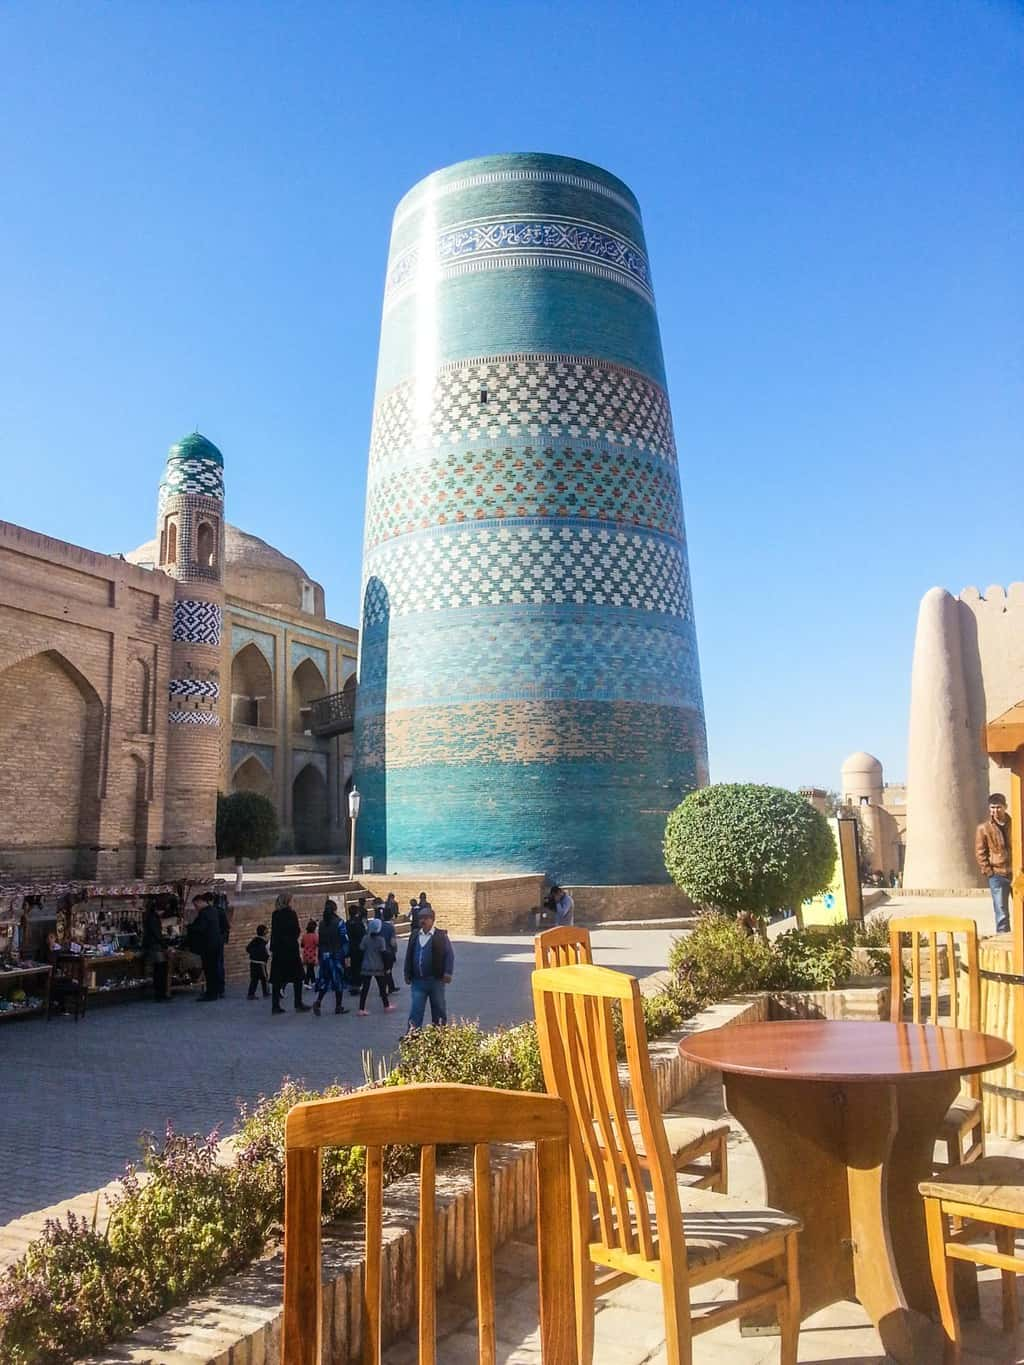 My favourite resturant in Khiva. I could sit here for hours while enjoyng a cold beer and wathcing all the wedding partys going by